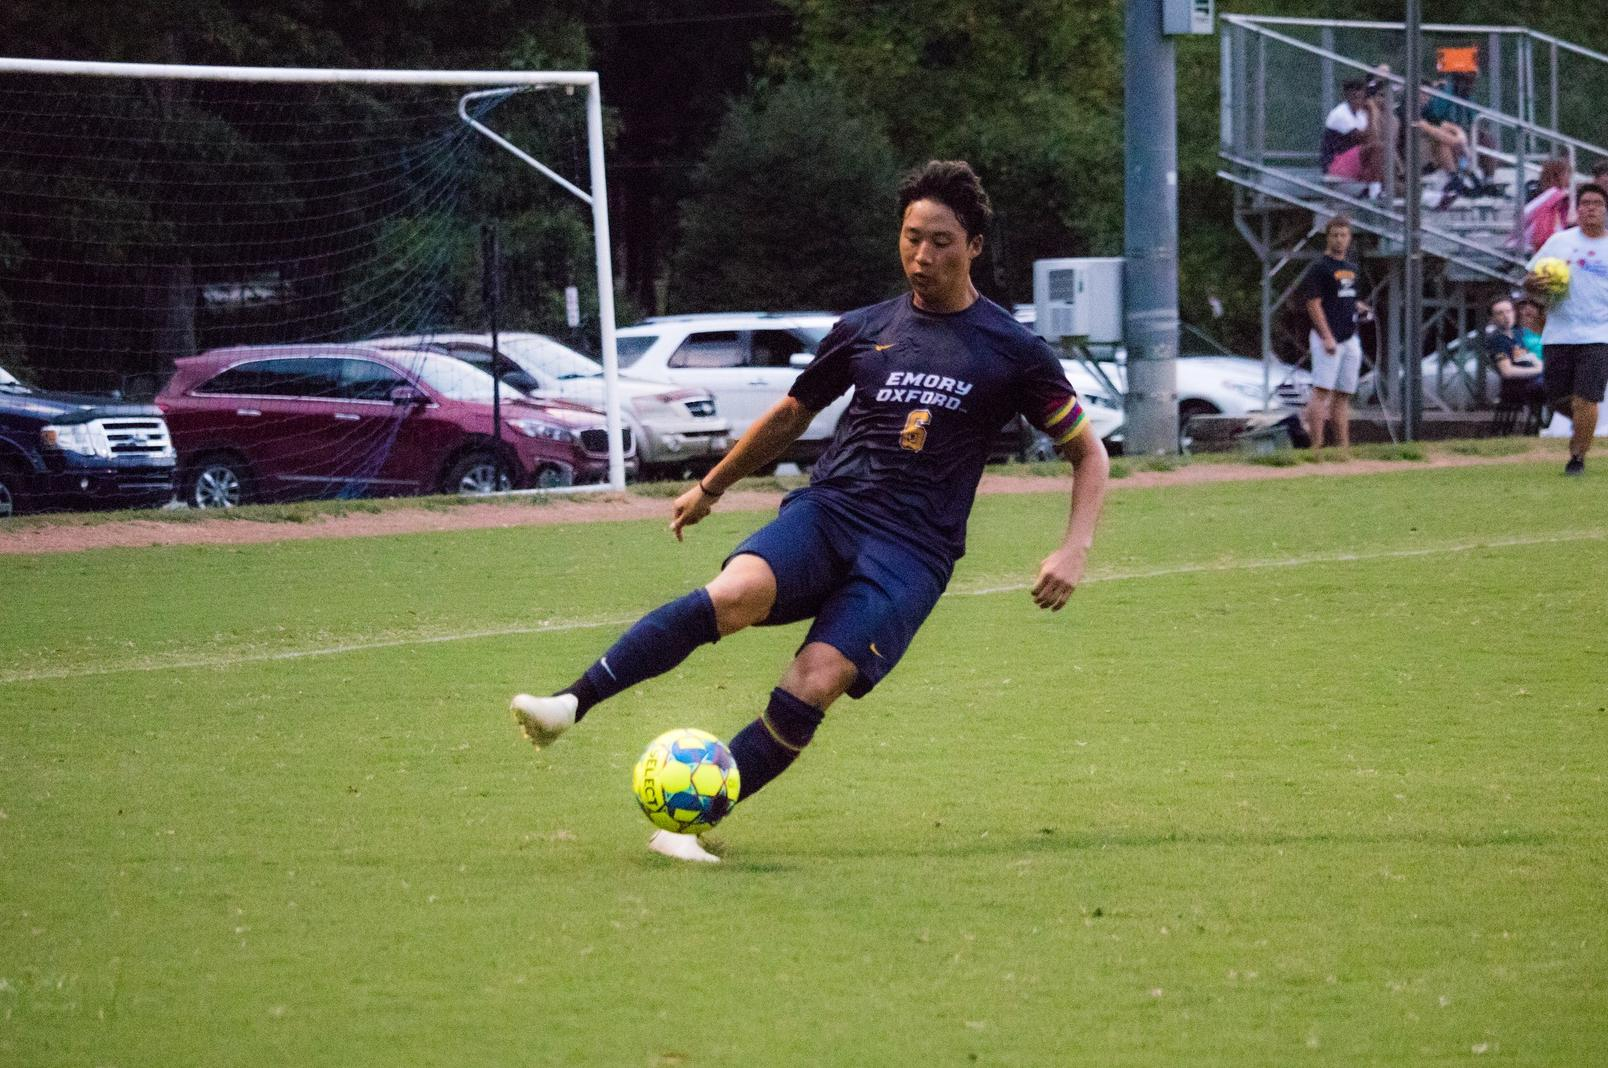 Men's Soccer Defeats Meridian 2-1, To Stay Undefeated